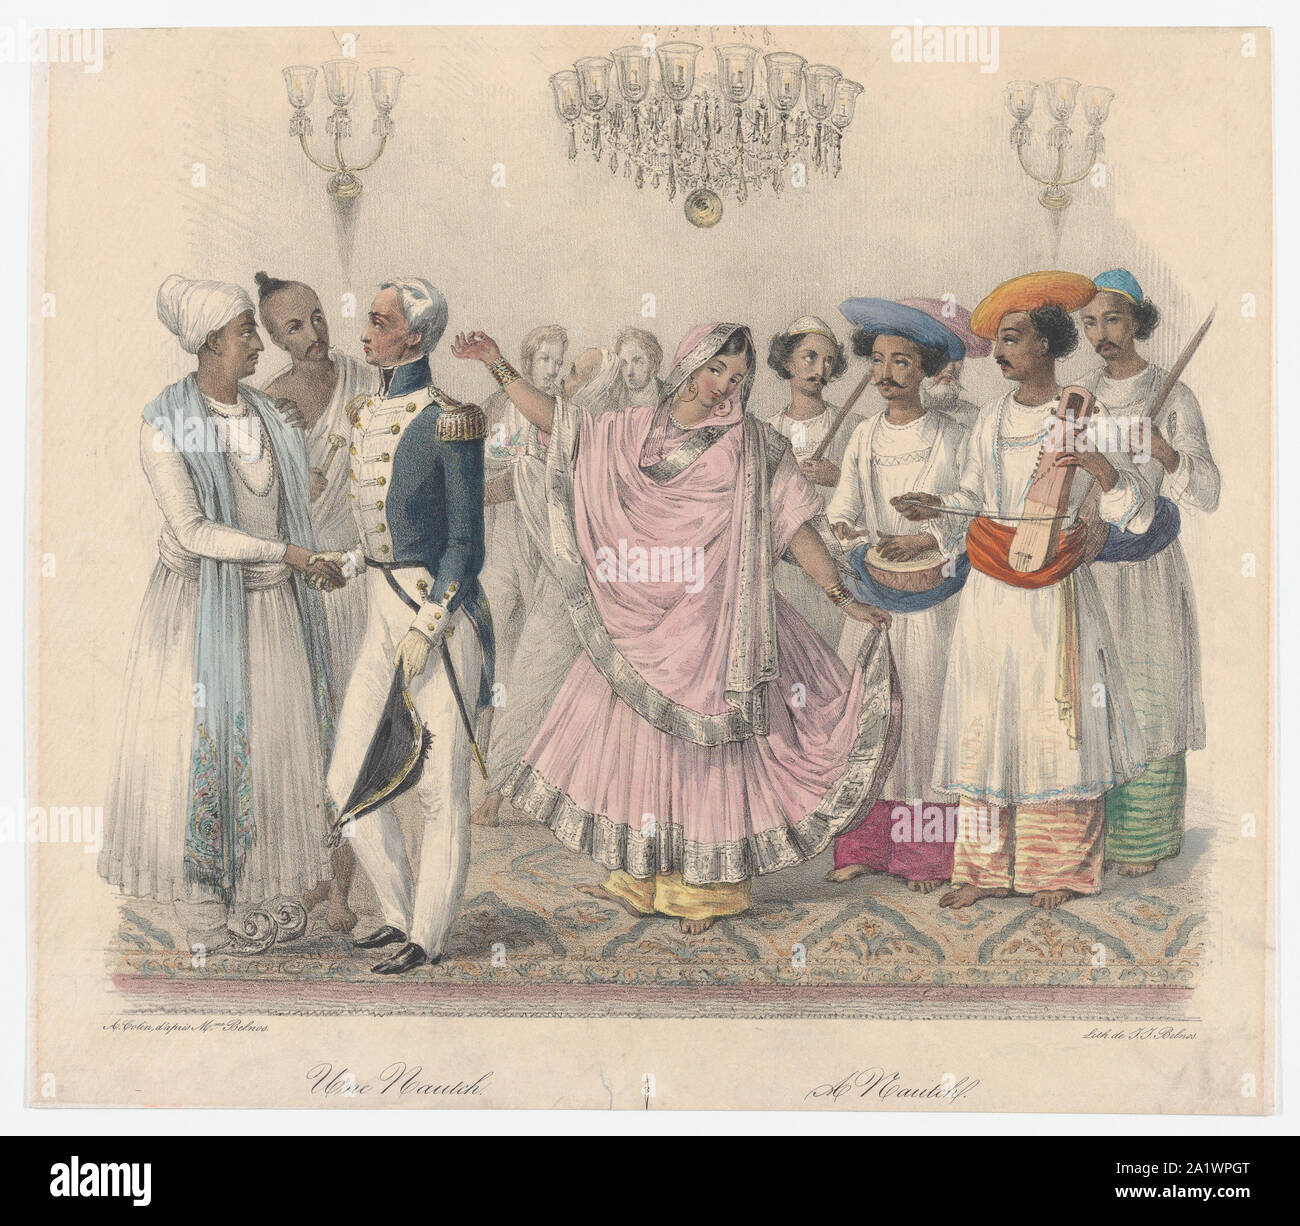 Une Nautch from Twenty four Plates Illustrative of Hindoo and European Manners in Bengal,1832.jpg - 2A1WPGT Stock Photo